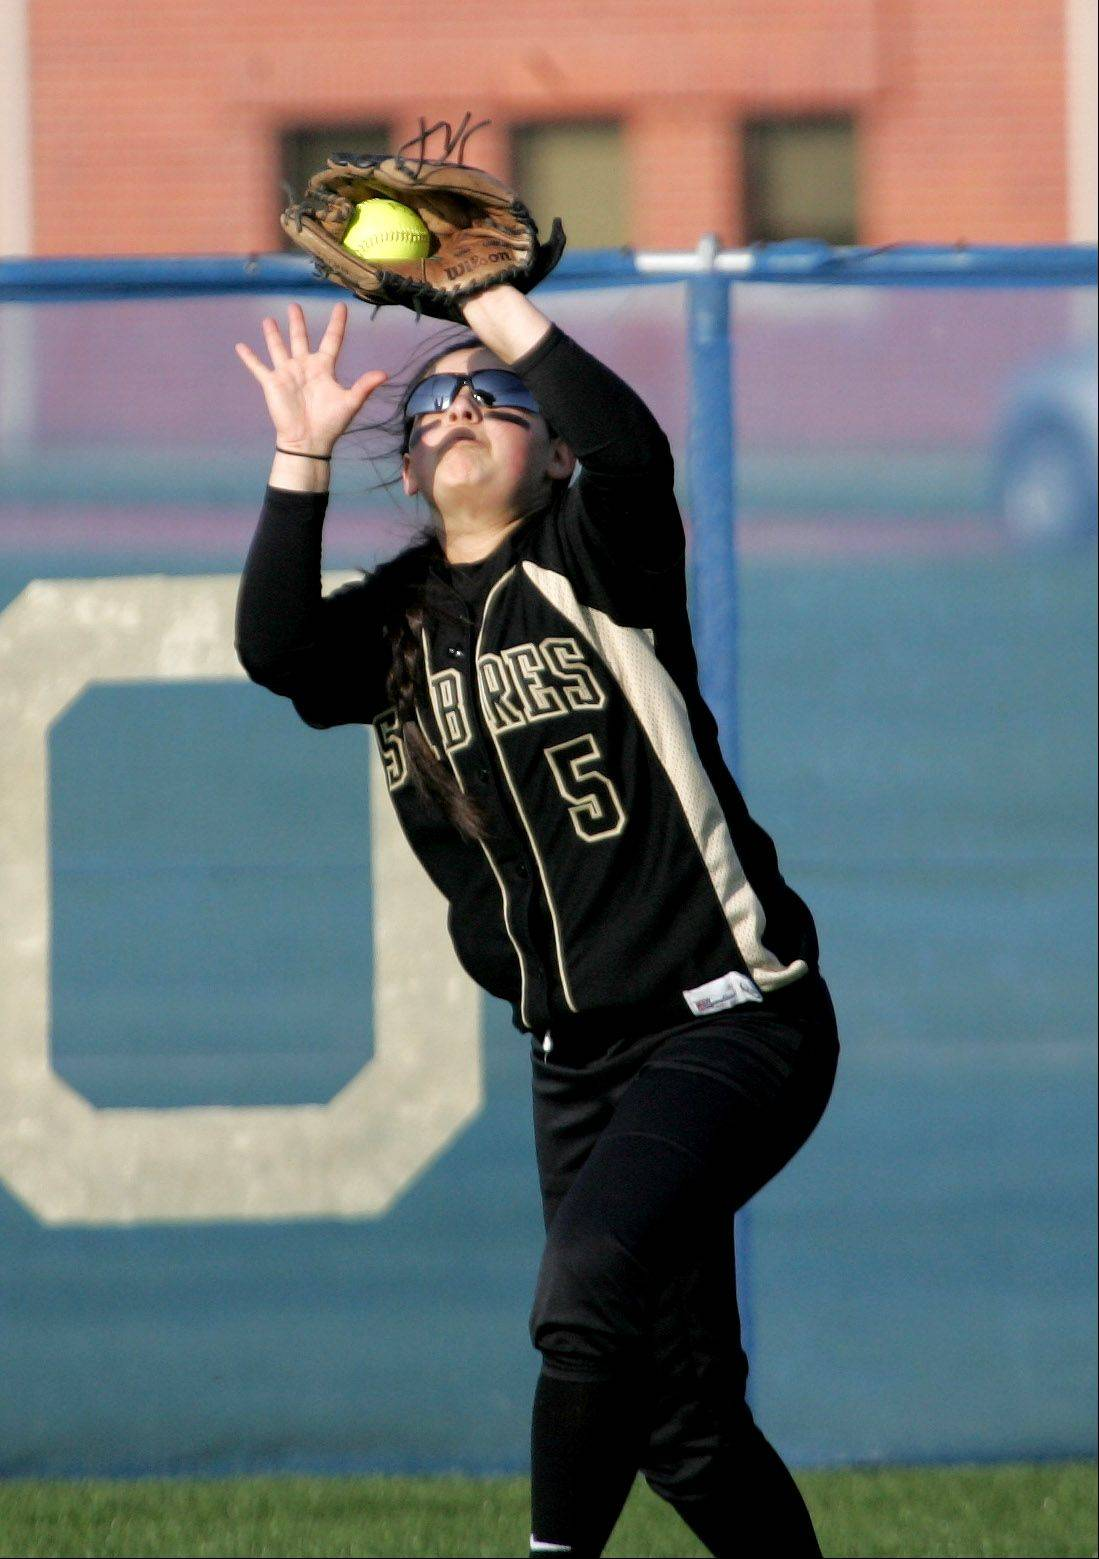 Andrea Barajas of Streamwood makes a catch in the outfield against Neuqua Valley Monday in Naperville.